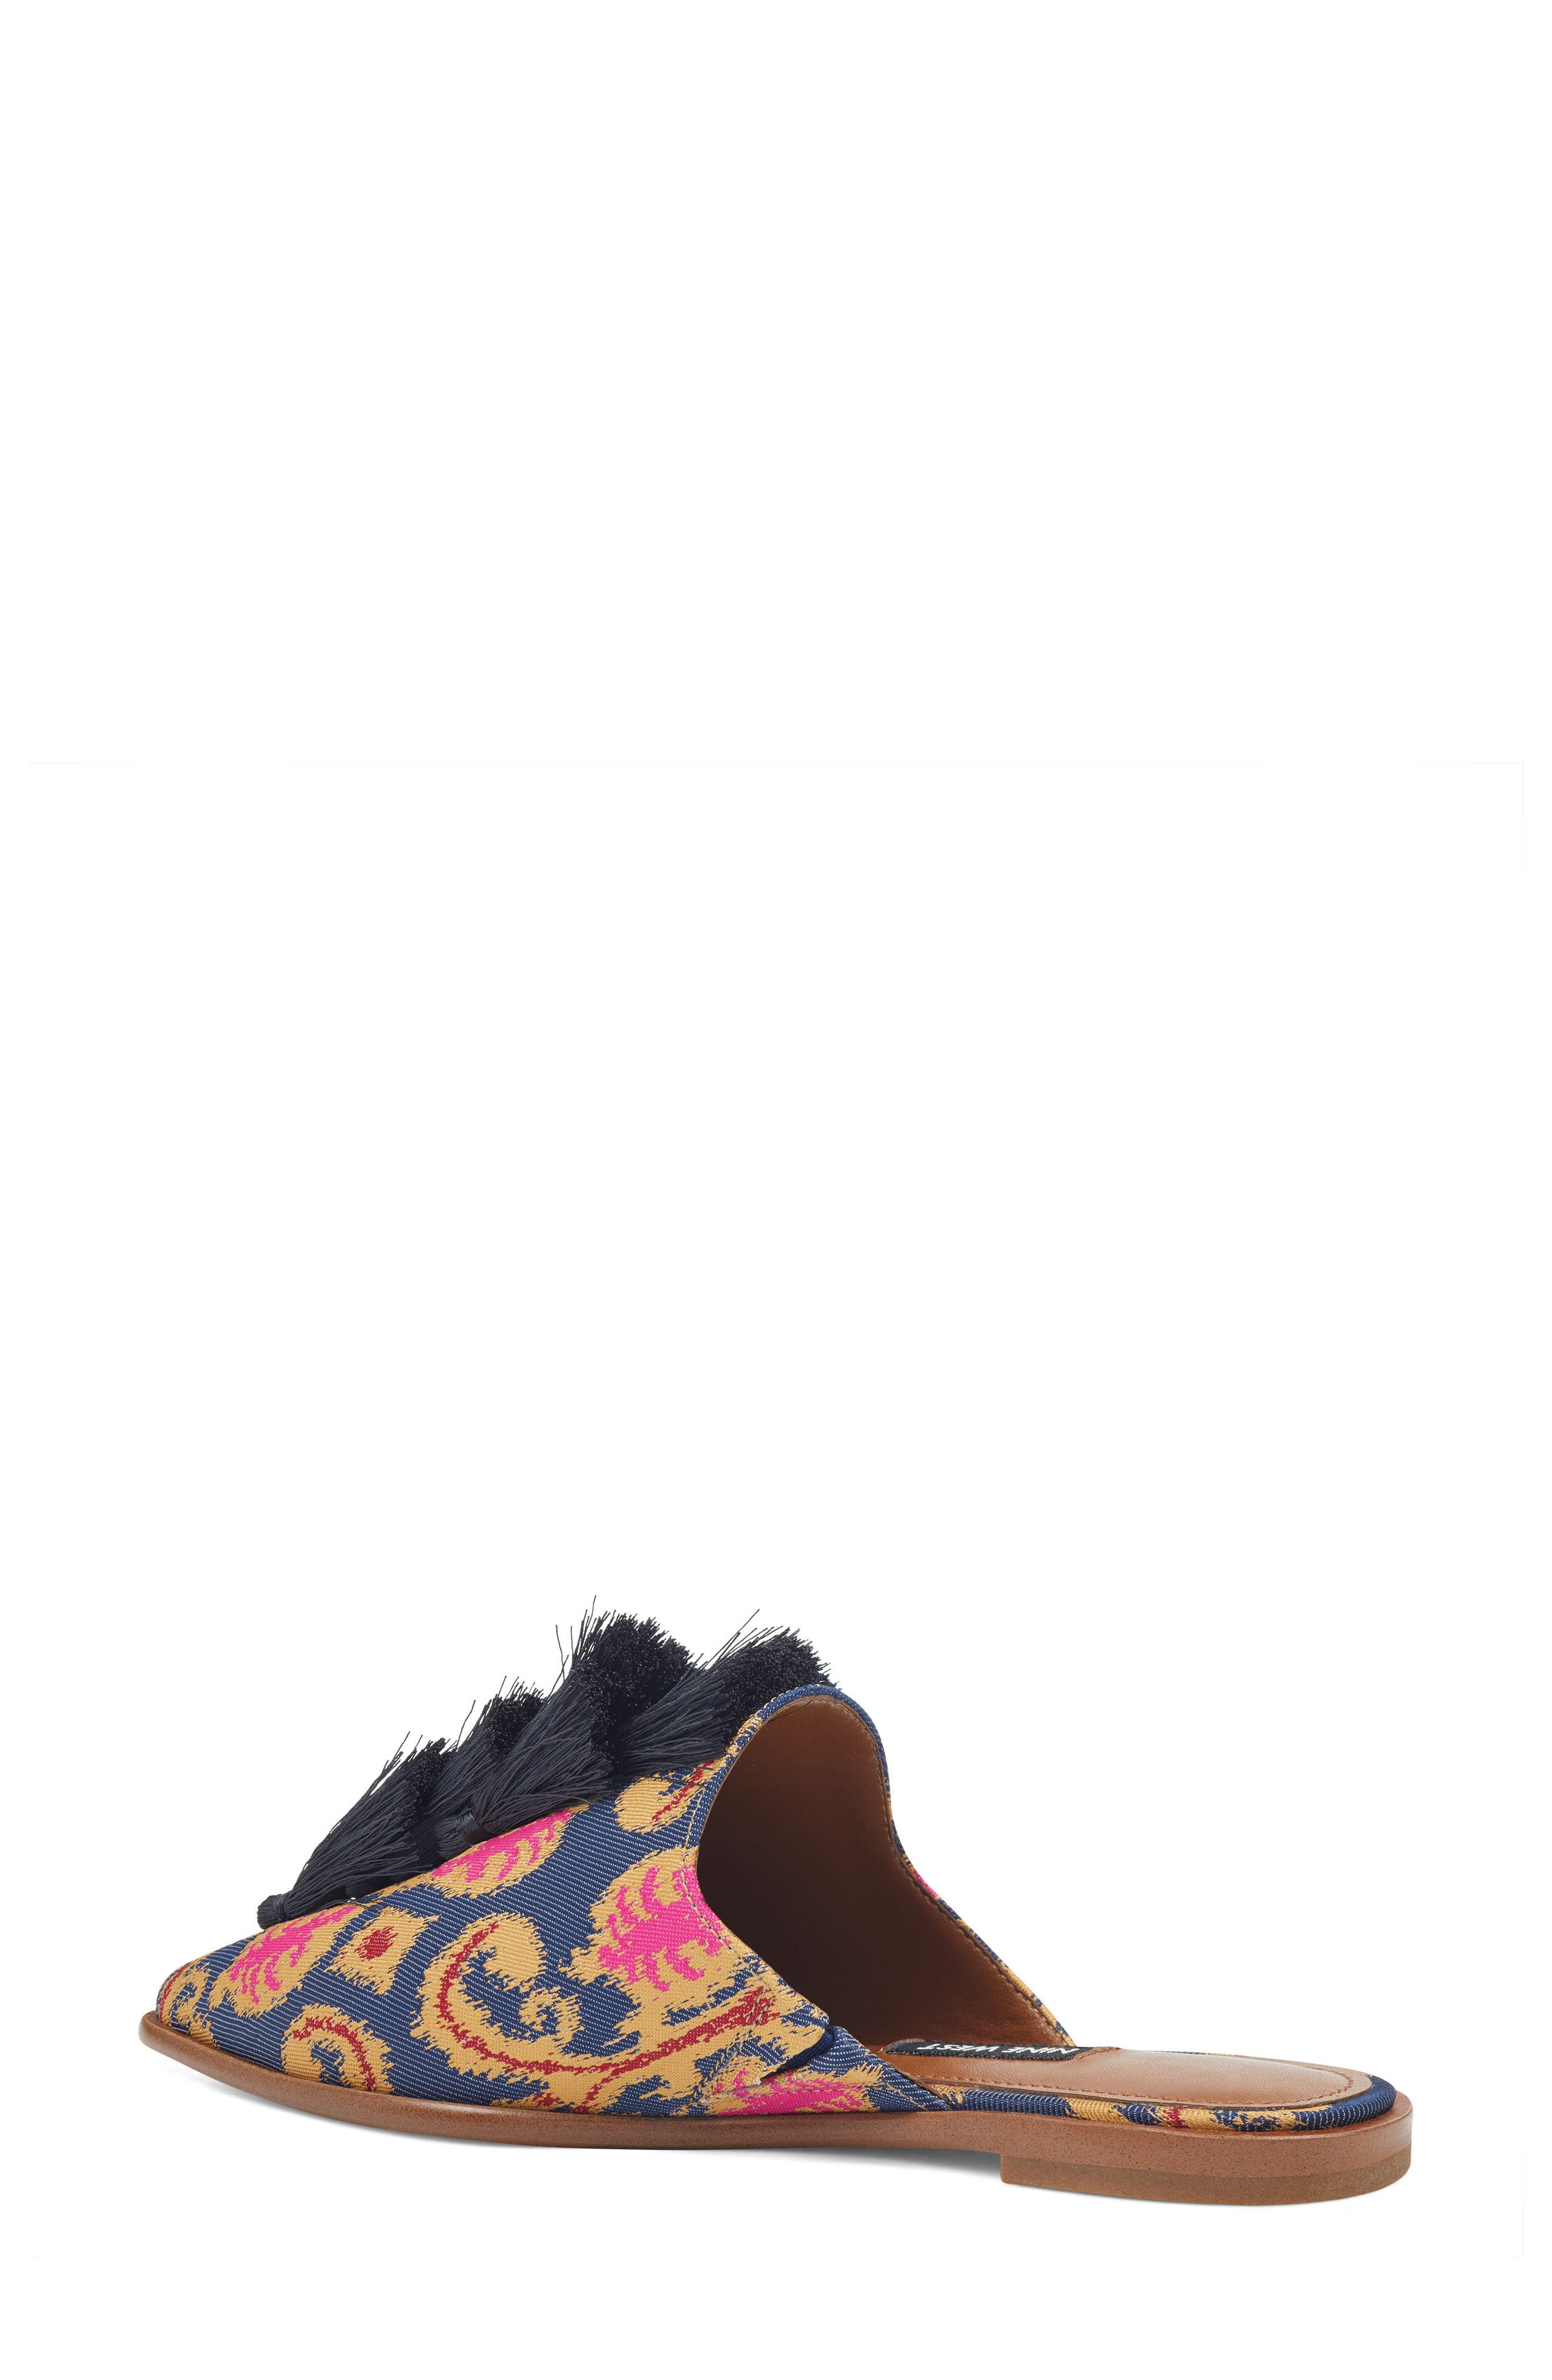 Ollial Fringed Loafer Mule,                             Alternate thumbnail 2, color,                             BLUE MULTI FABRIC